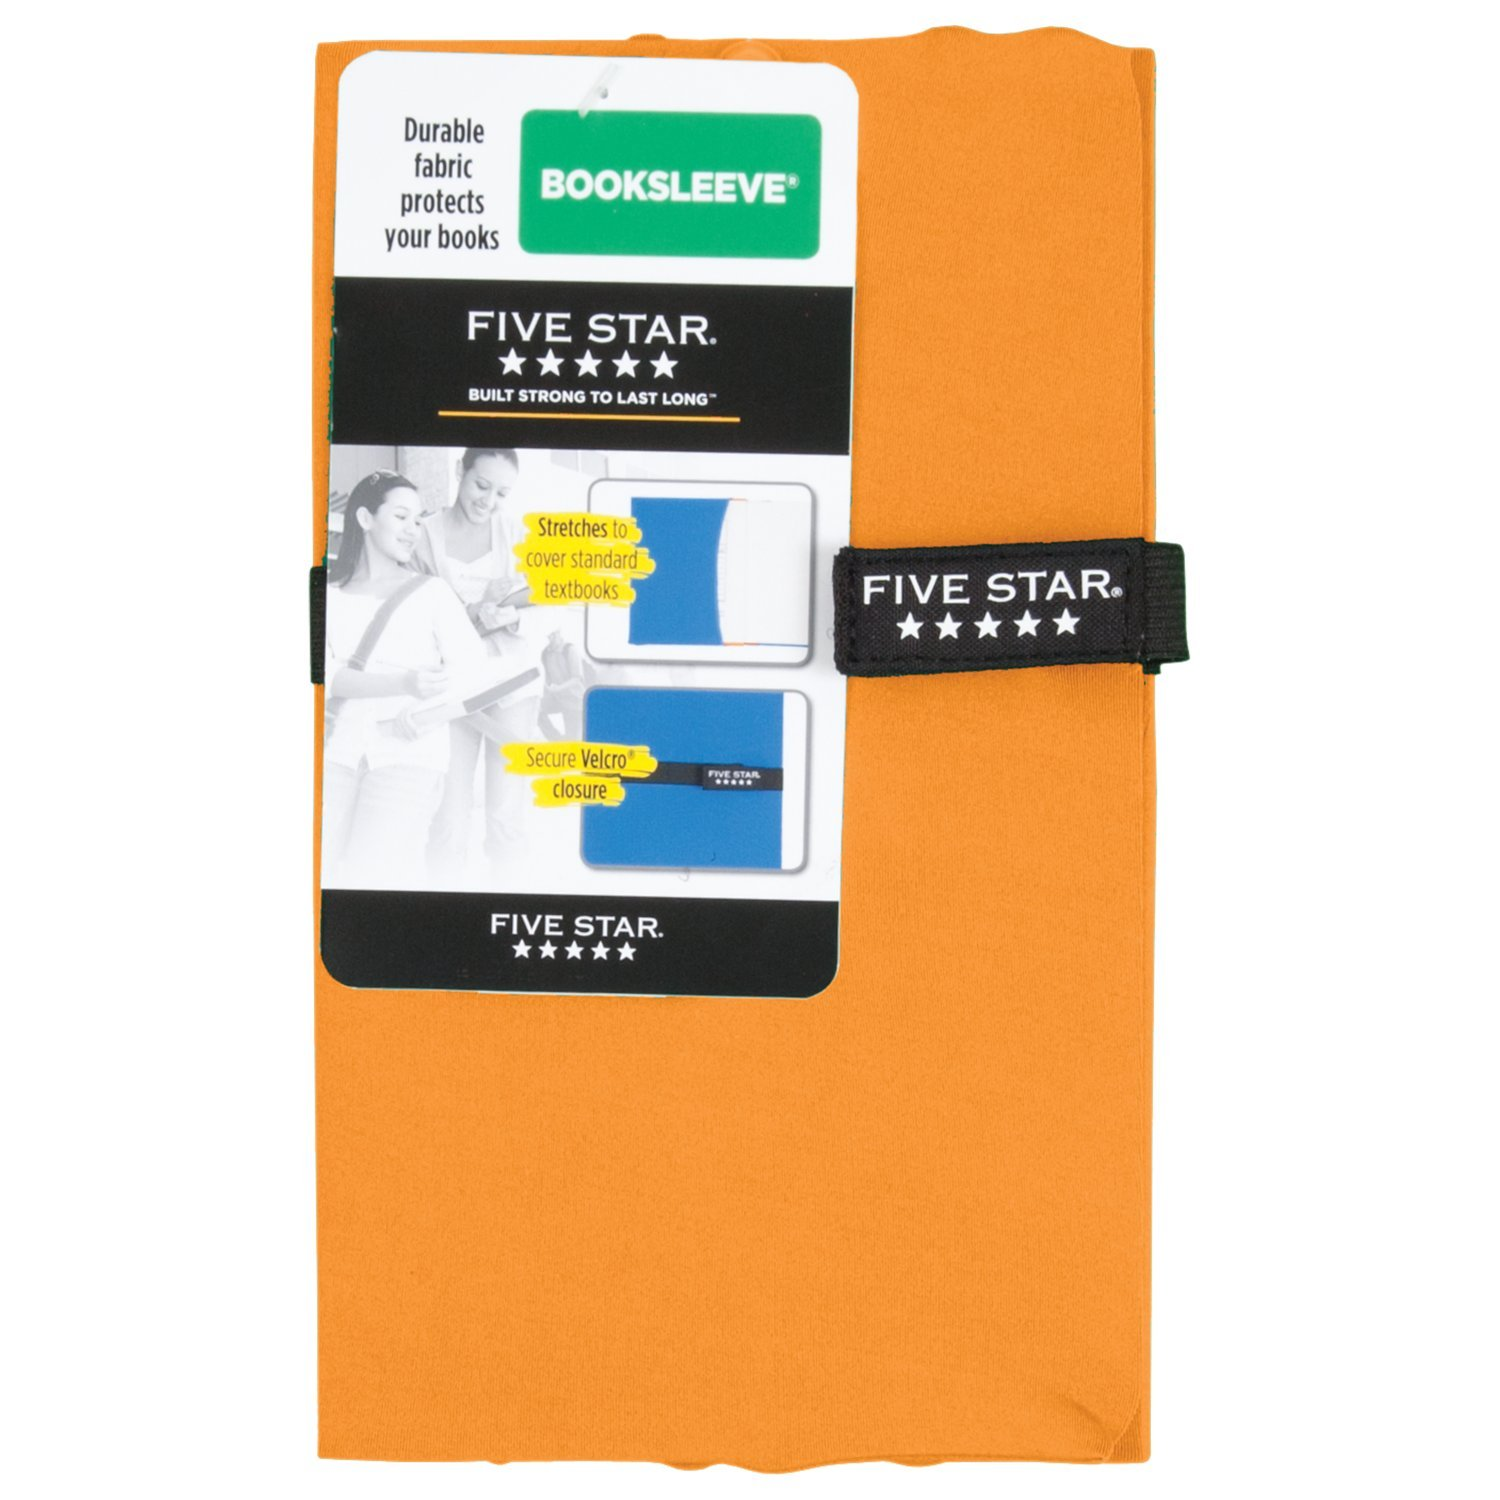 Five Star Book Sleeve/Book Cover, School Supplies, BookSleeve, Color Selected For You (50646)